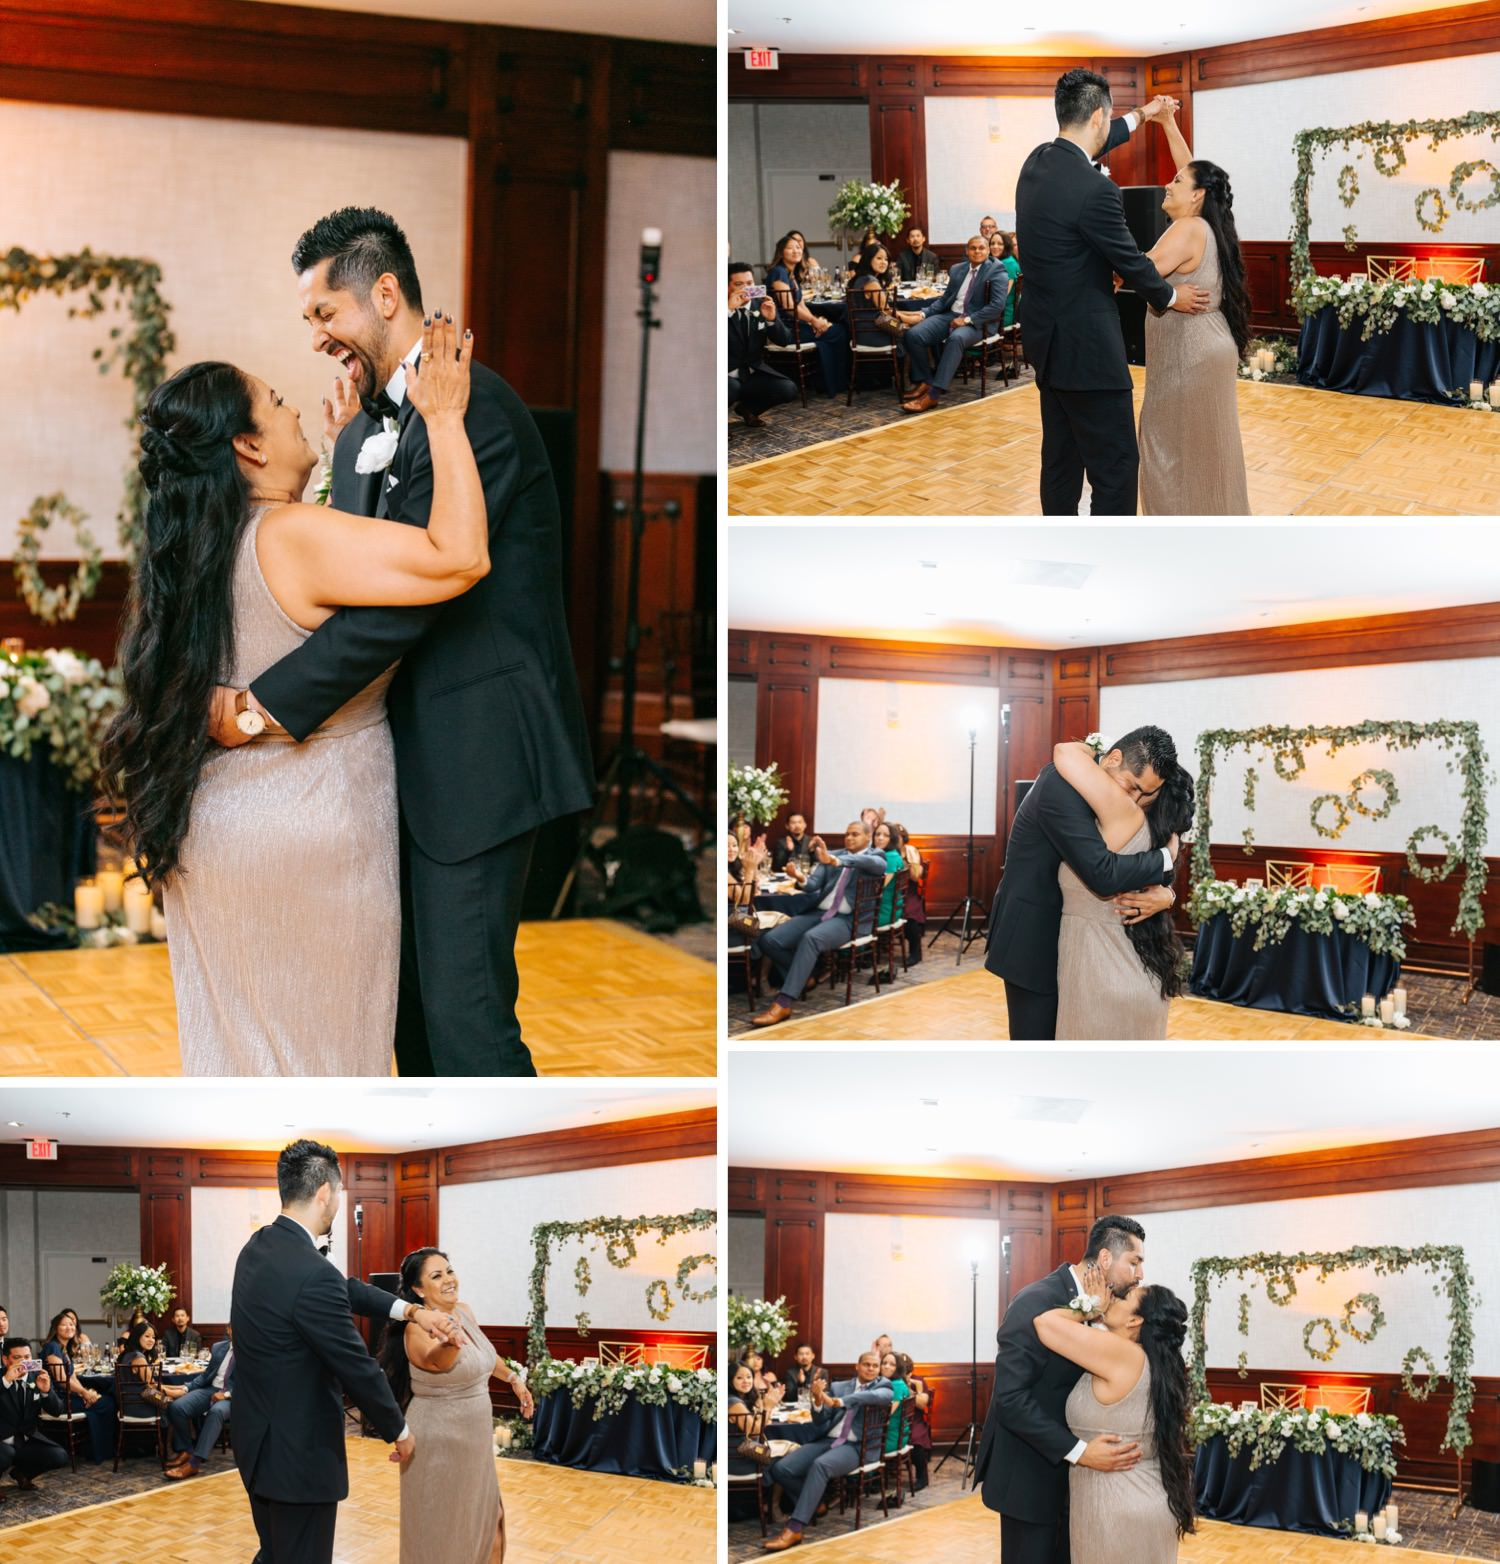 Mother and Son Dance - Groom dances with his Mom - https://brittneyhannonphotography.com